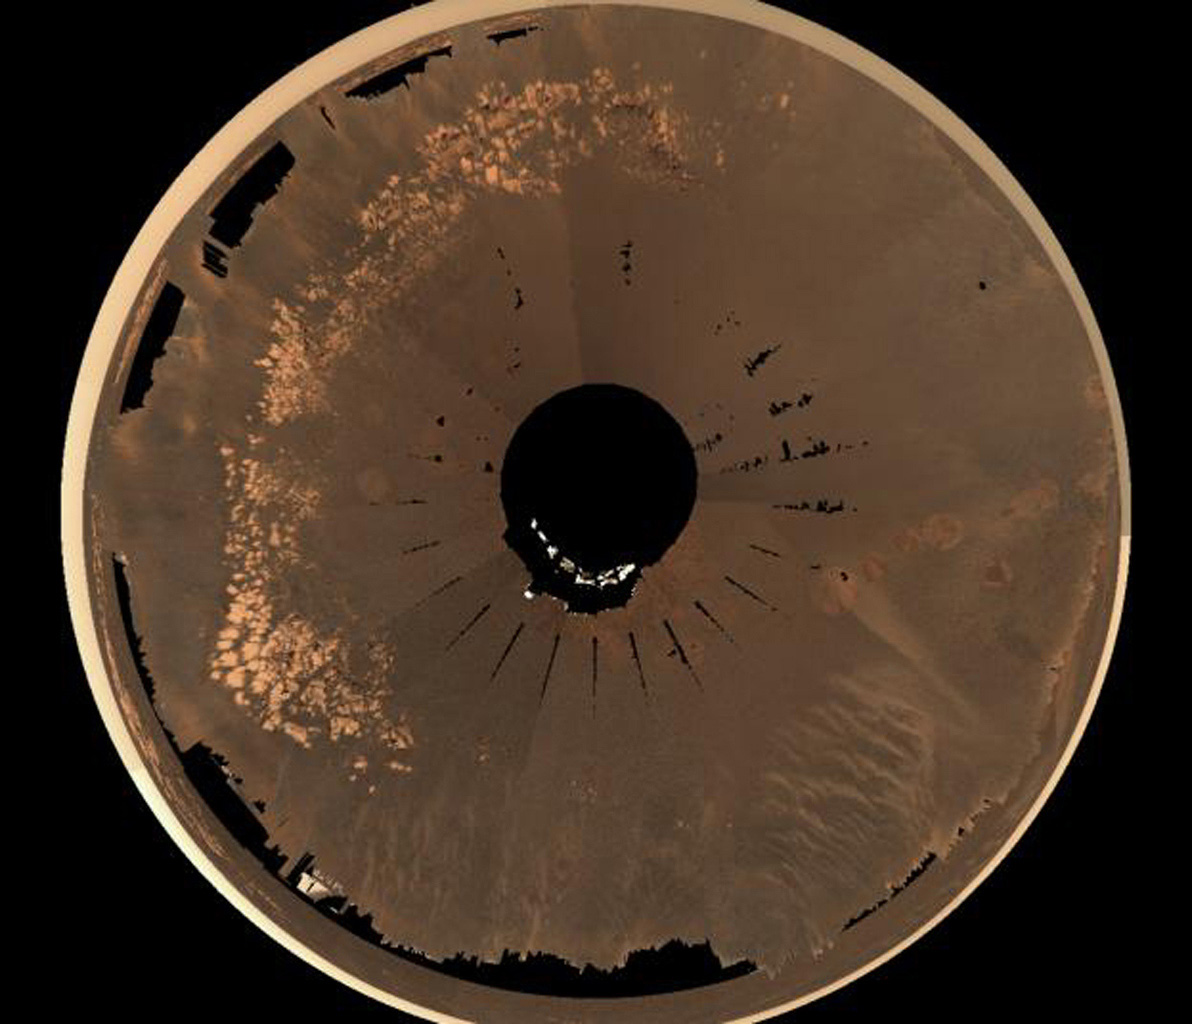 This image shows an overhead view of NASA's Mars Exploration Rover Opportunity landing site at Meridiani Planum, nicknamed 'EagleCrater.' Light and dark soil targets and an airbag bounce are seen at this spot dubbed 'Neopolitan.'